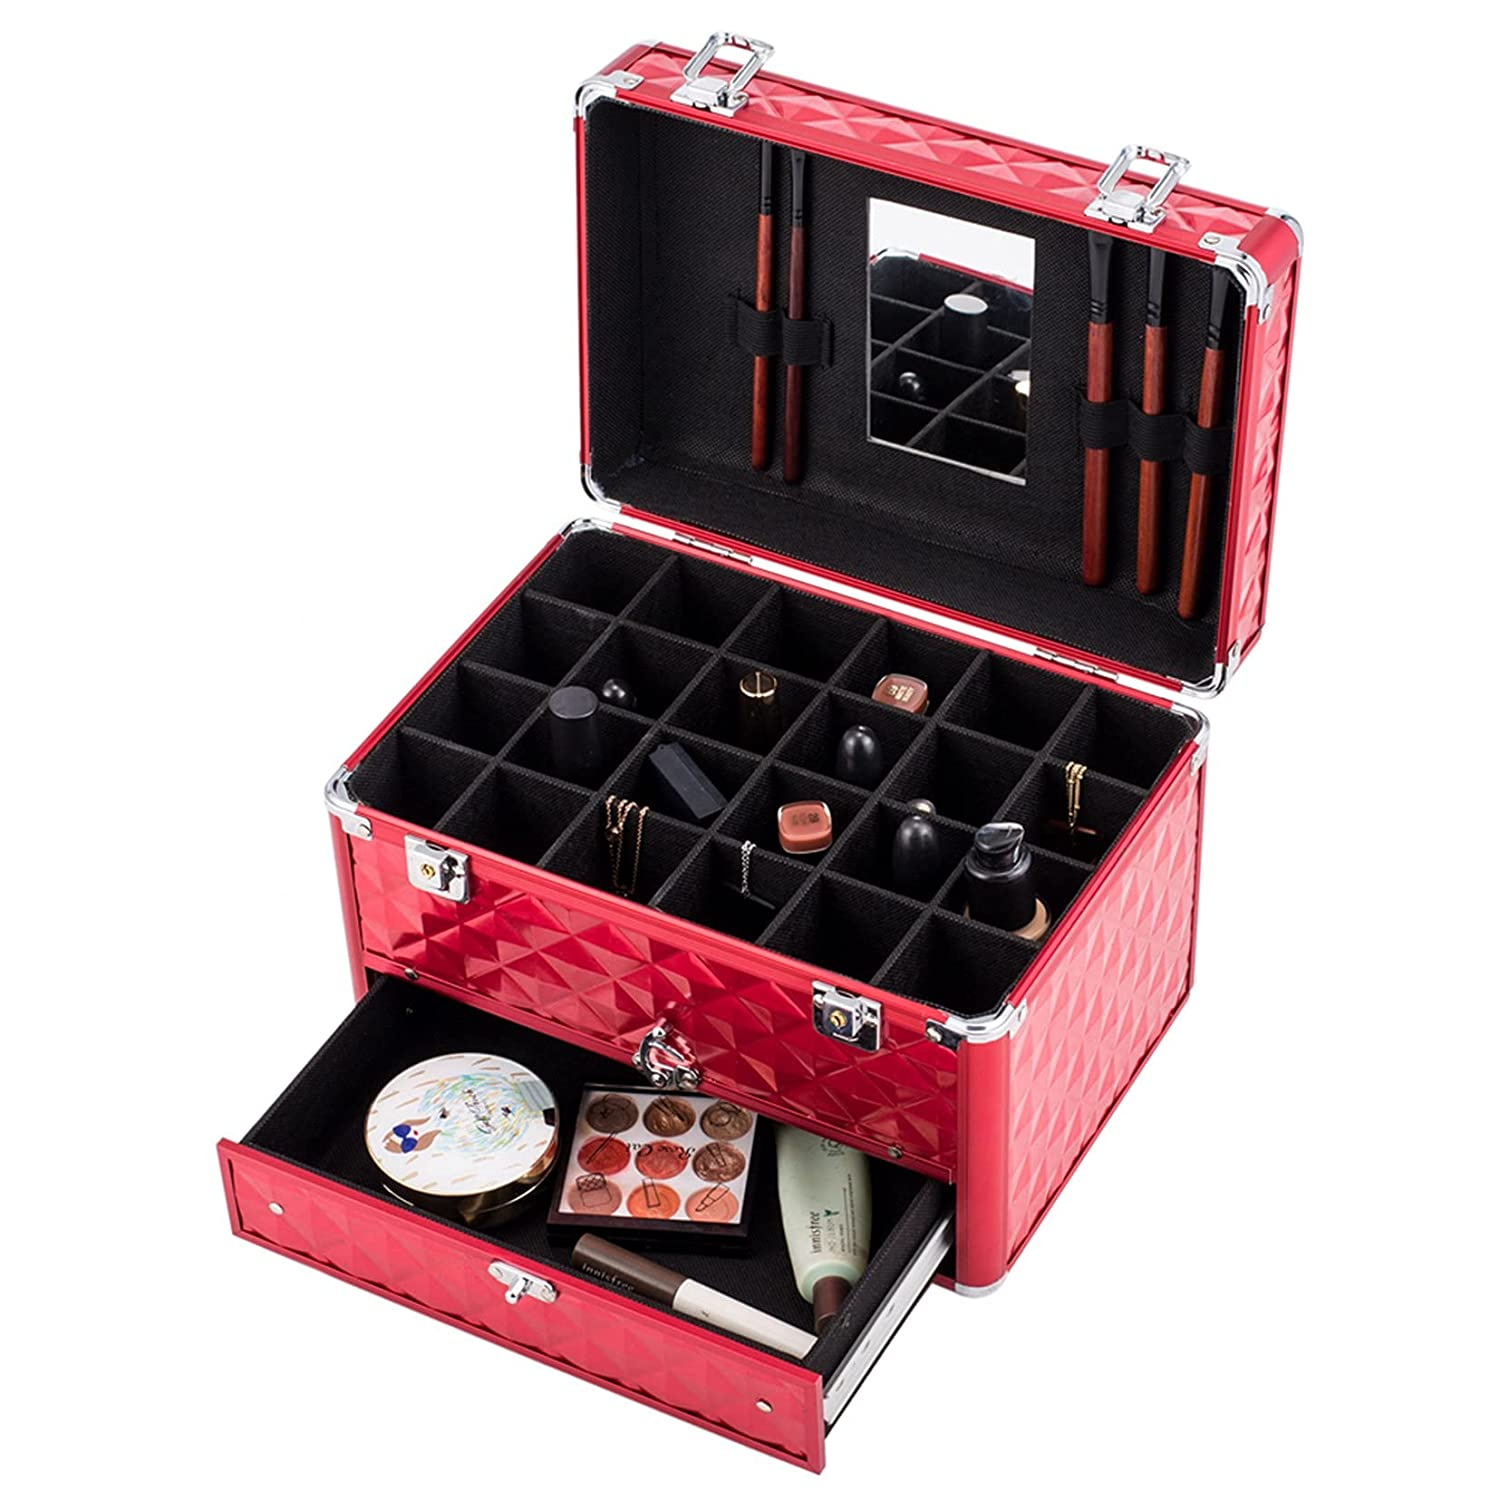 Makeup Train Case with 24 polish compartments Purchase Charlotte Mall Nail storage